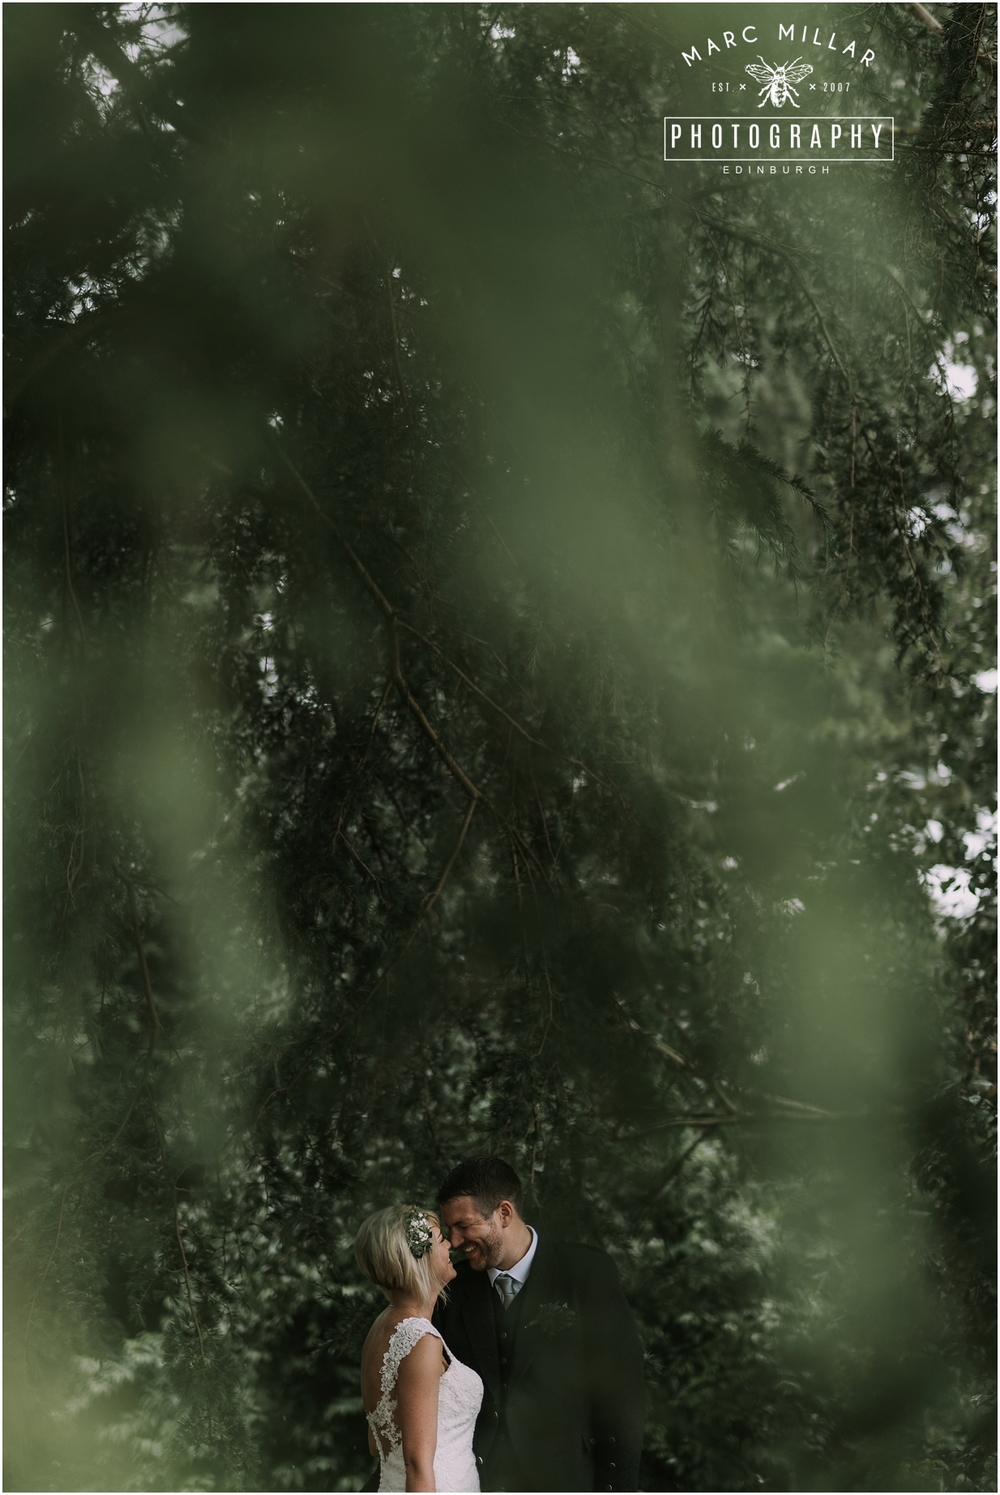 Royal Botanic Gardens Edinburgh Pre Wedding Shoot by Marc Millar Photography